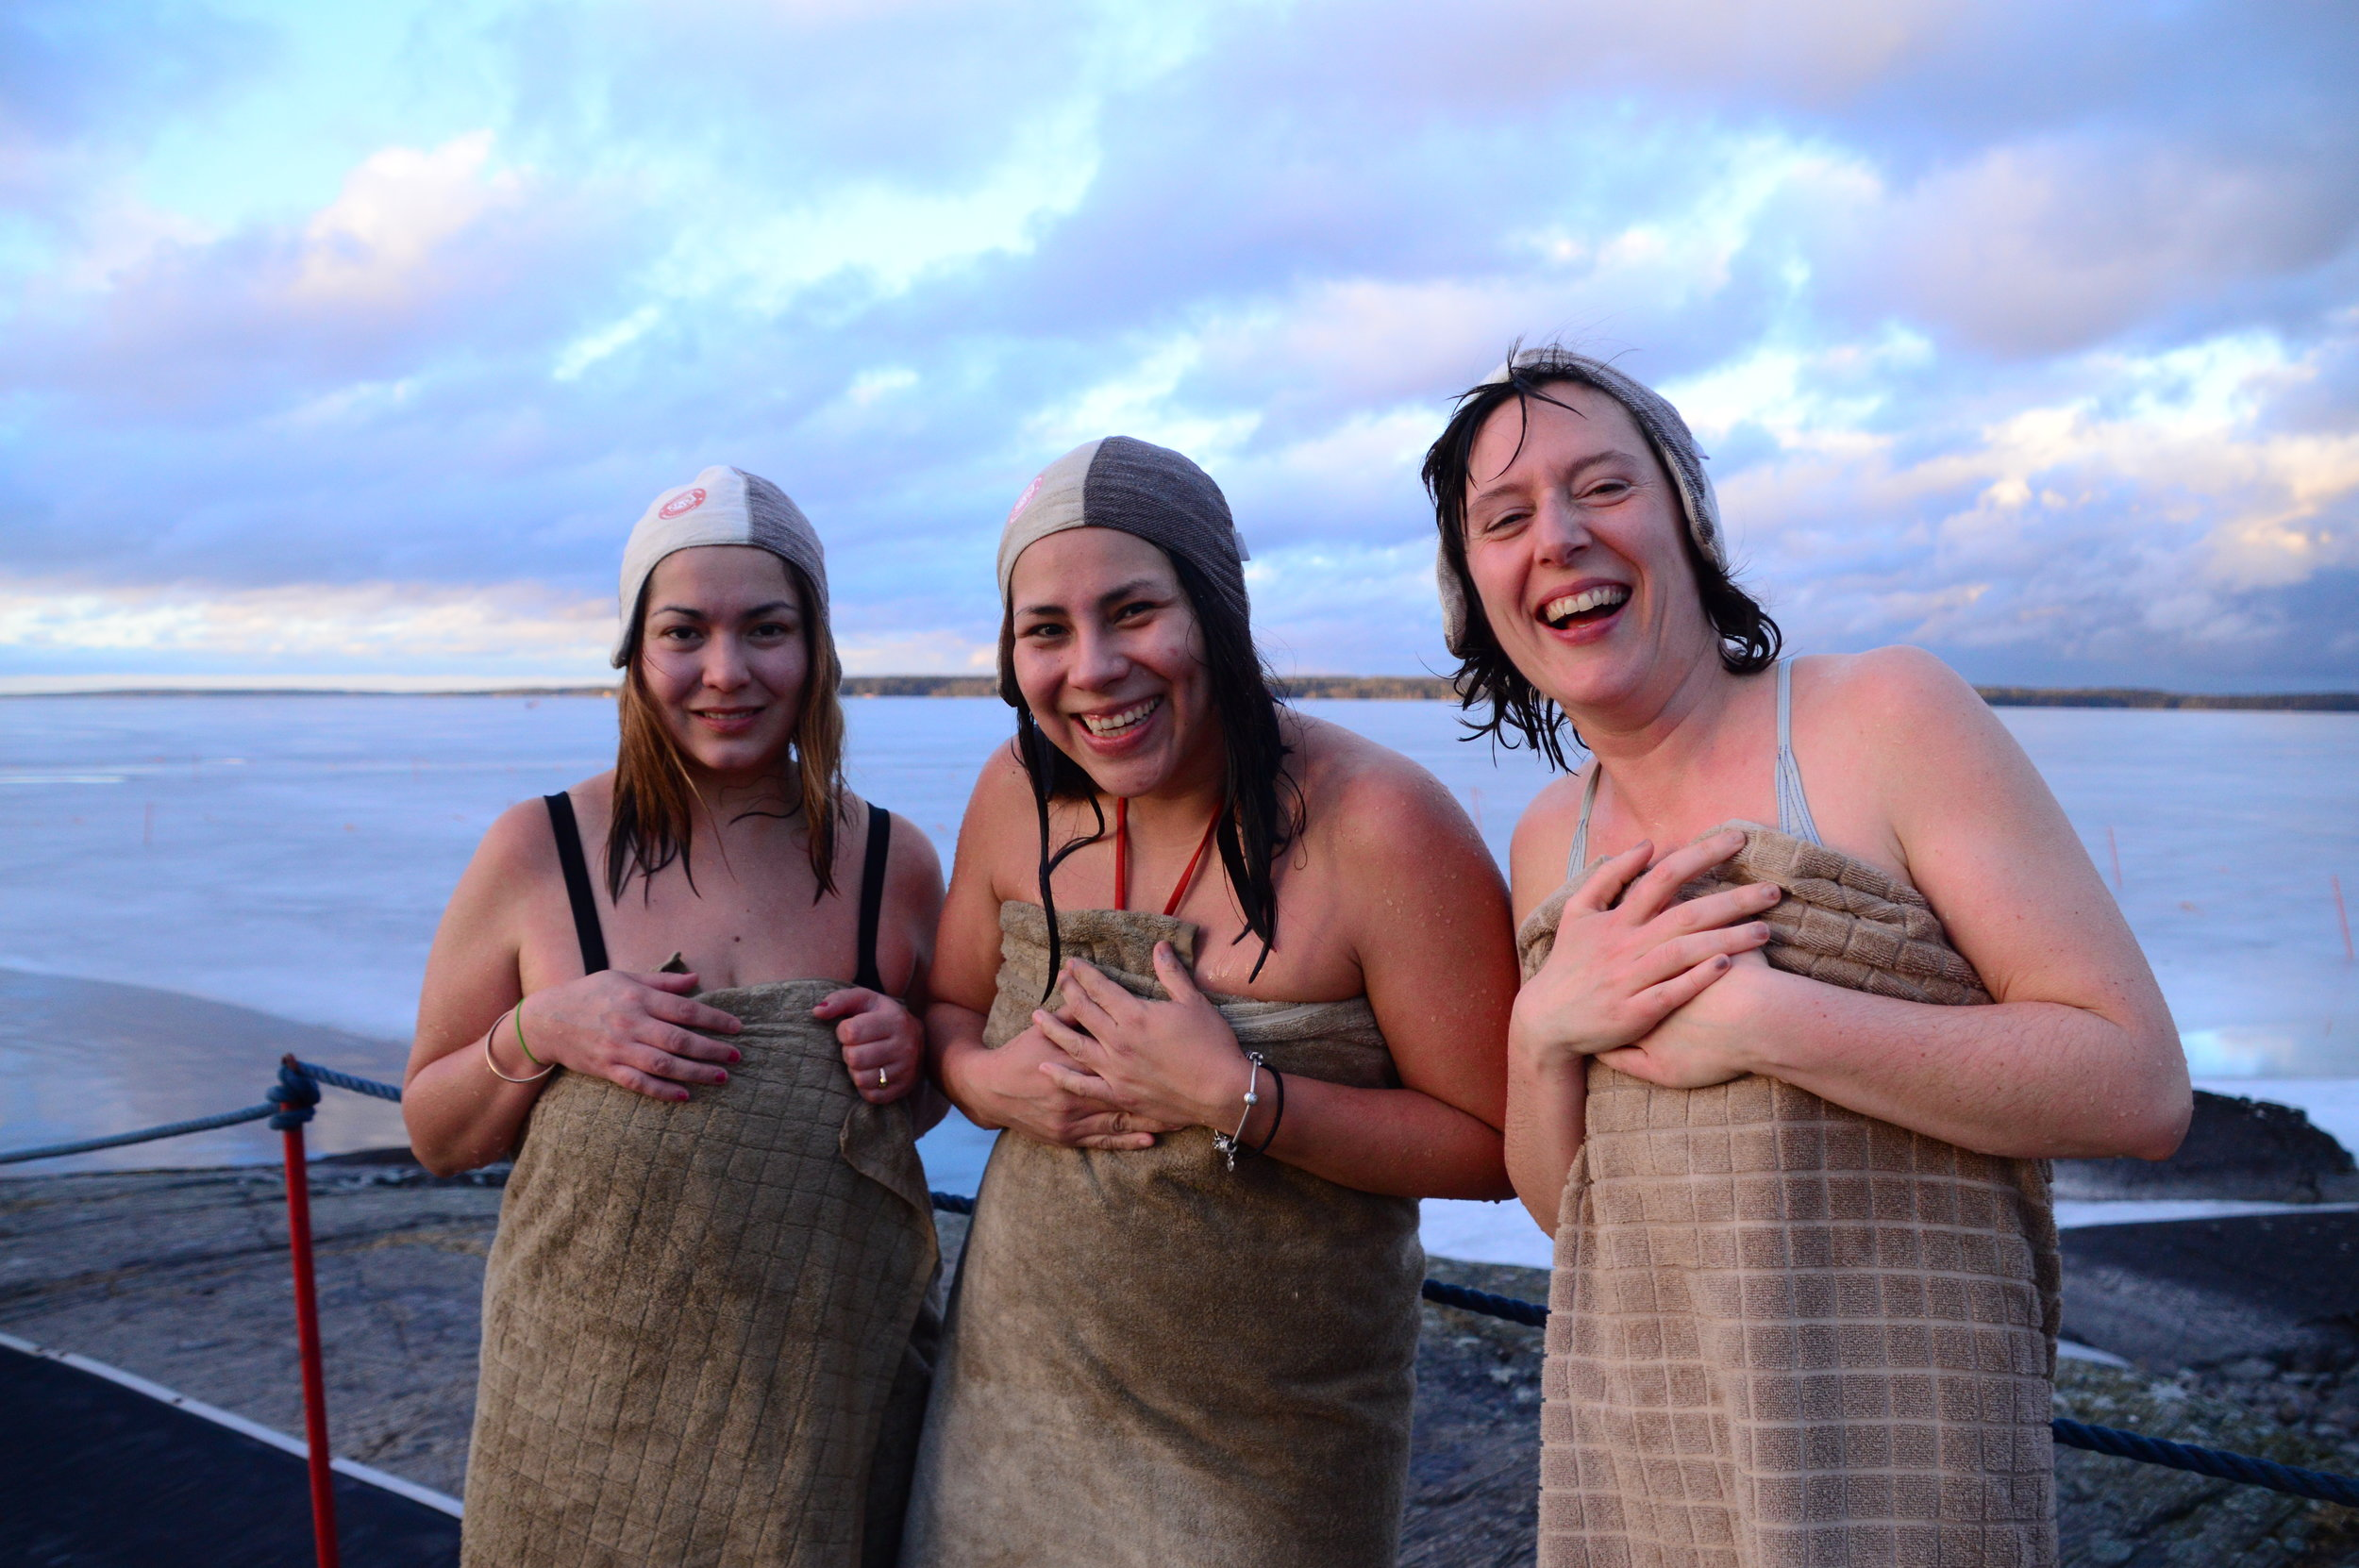 guided-sauna-and-swimming-tour021.JPG